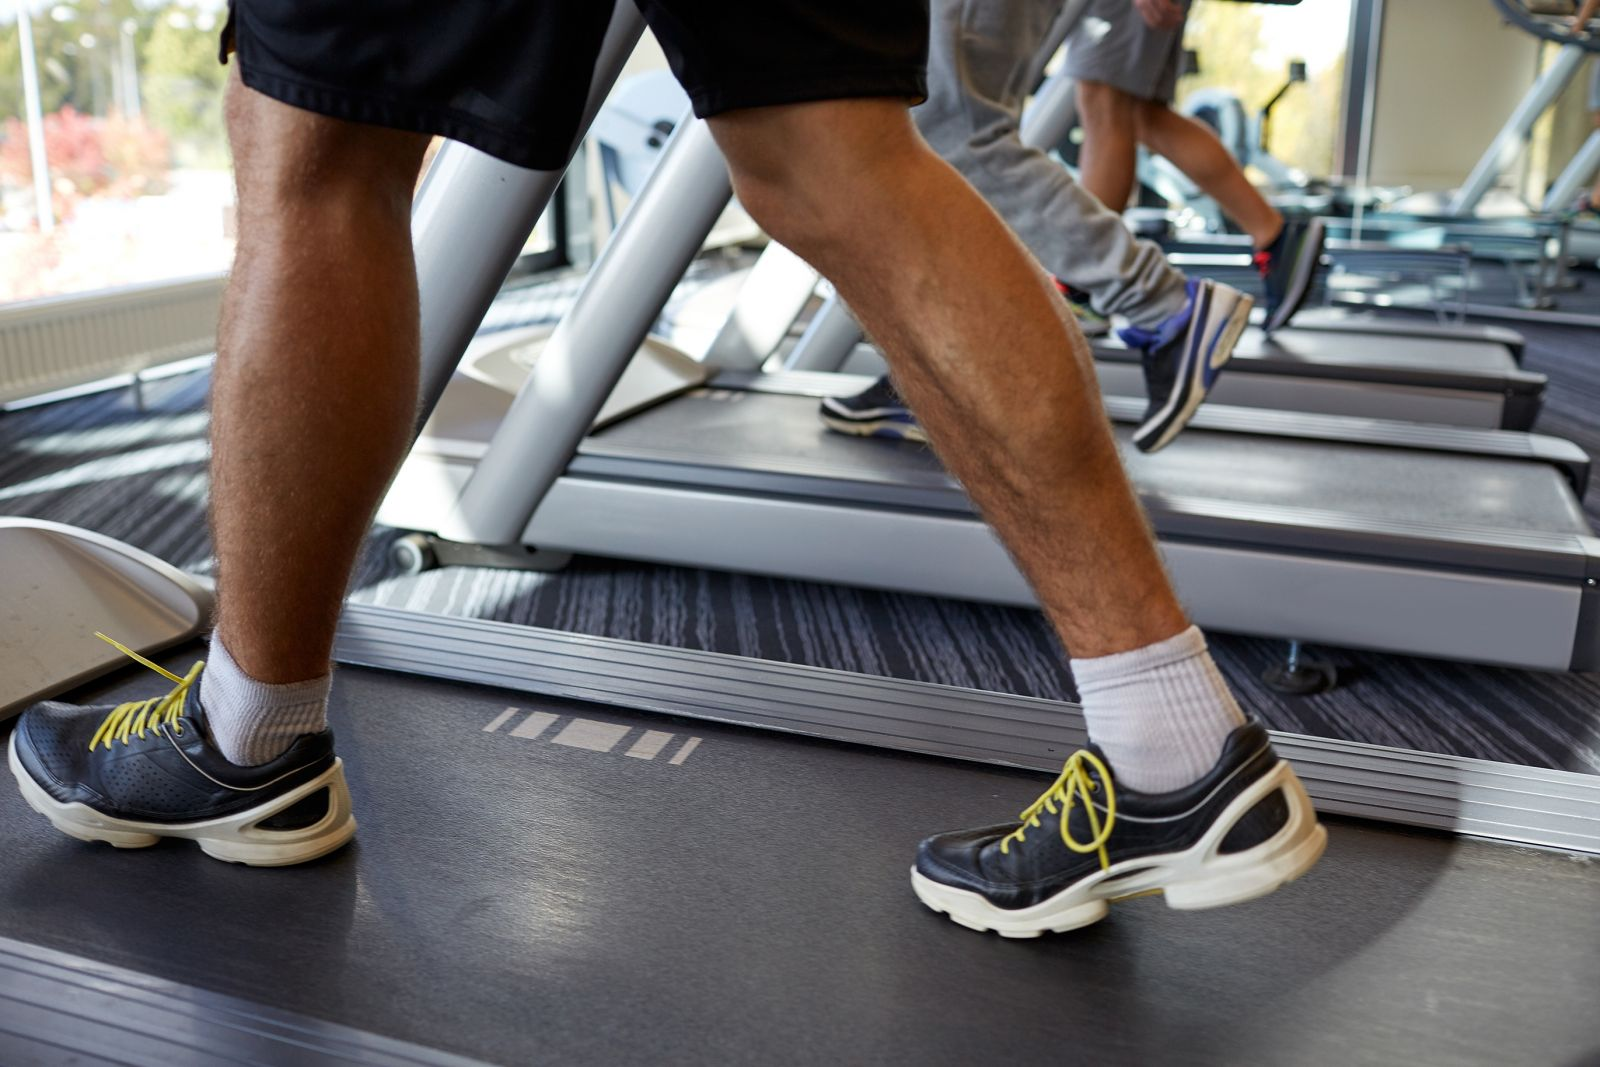 walking-fitness-exercise-treadmill